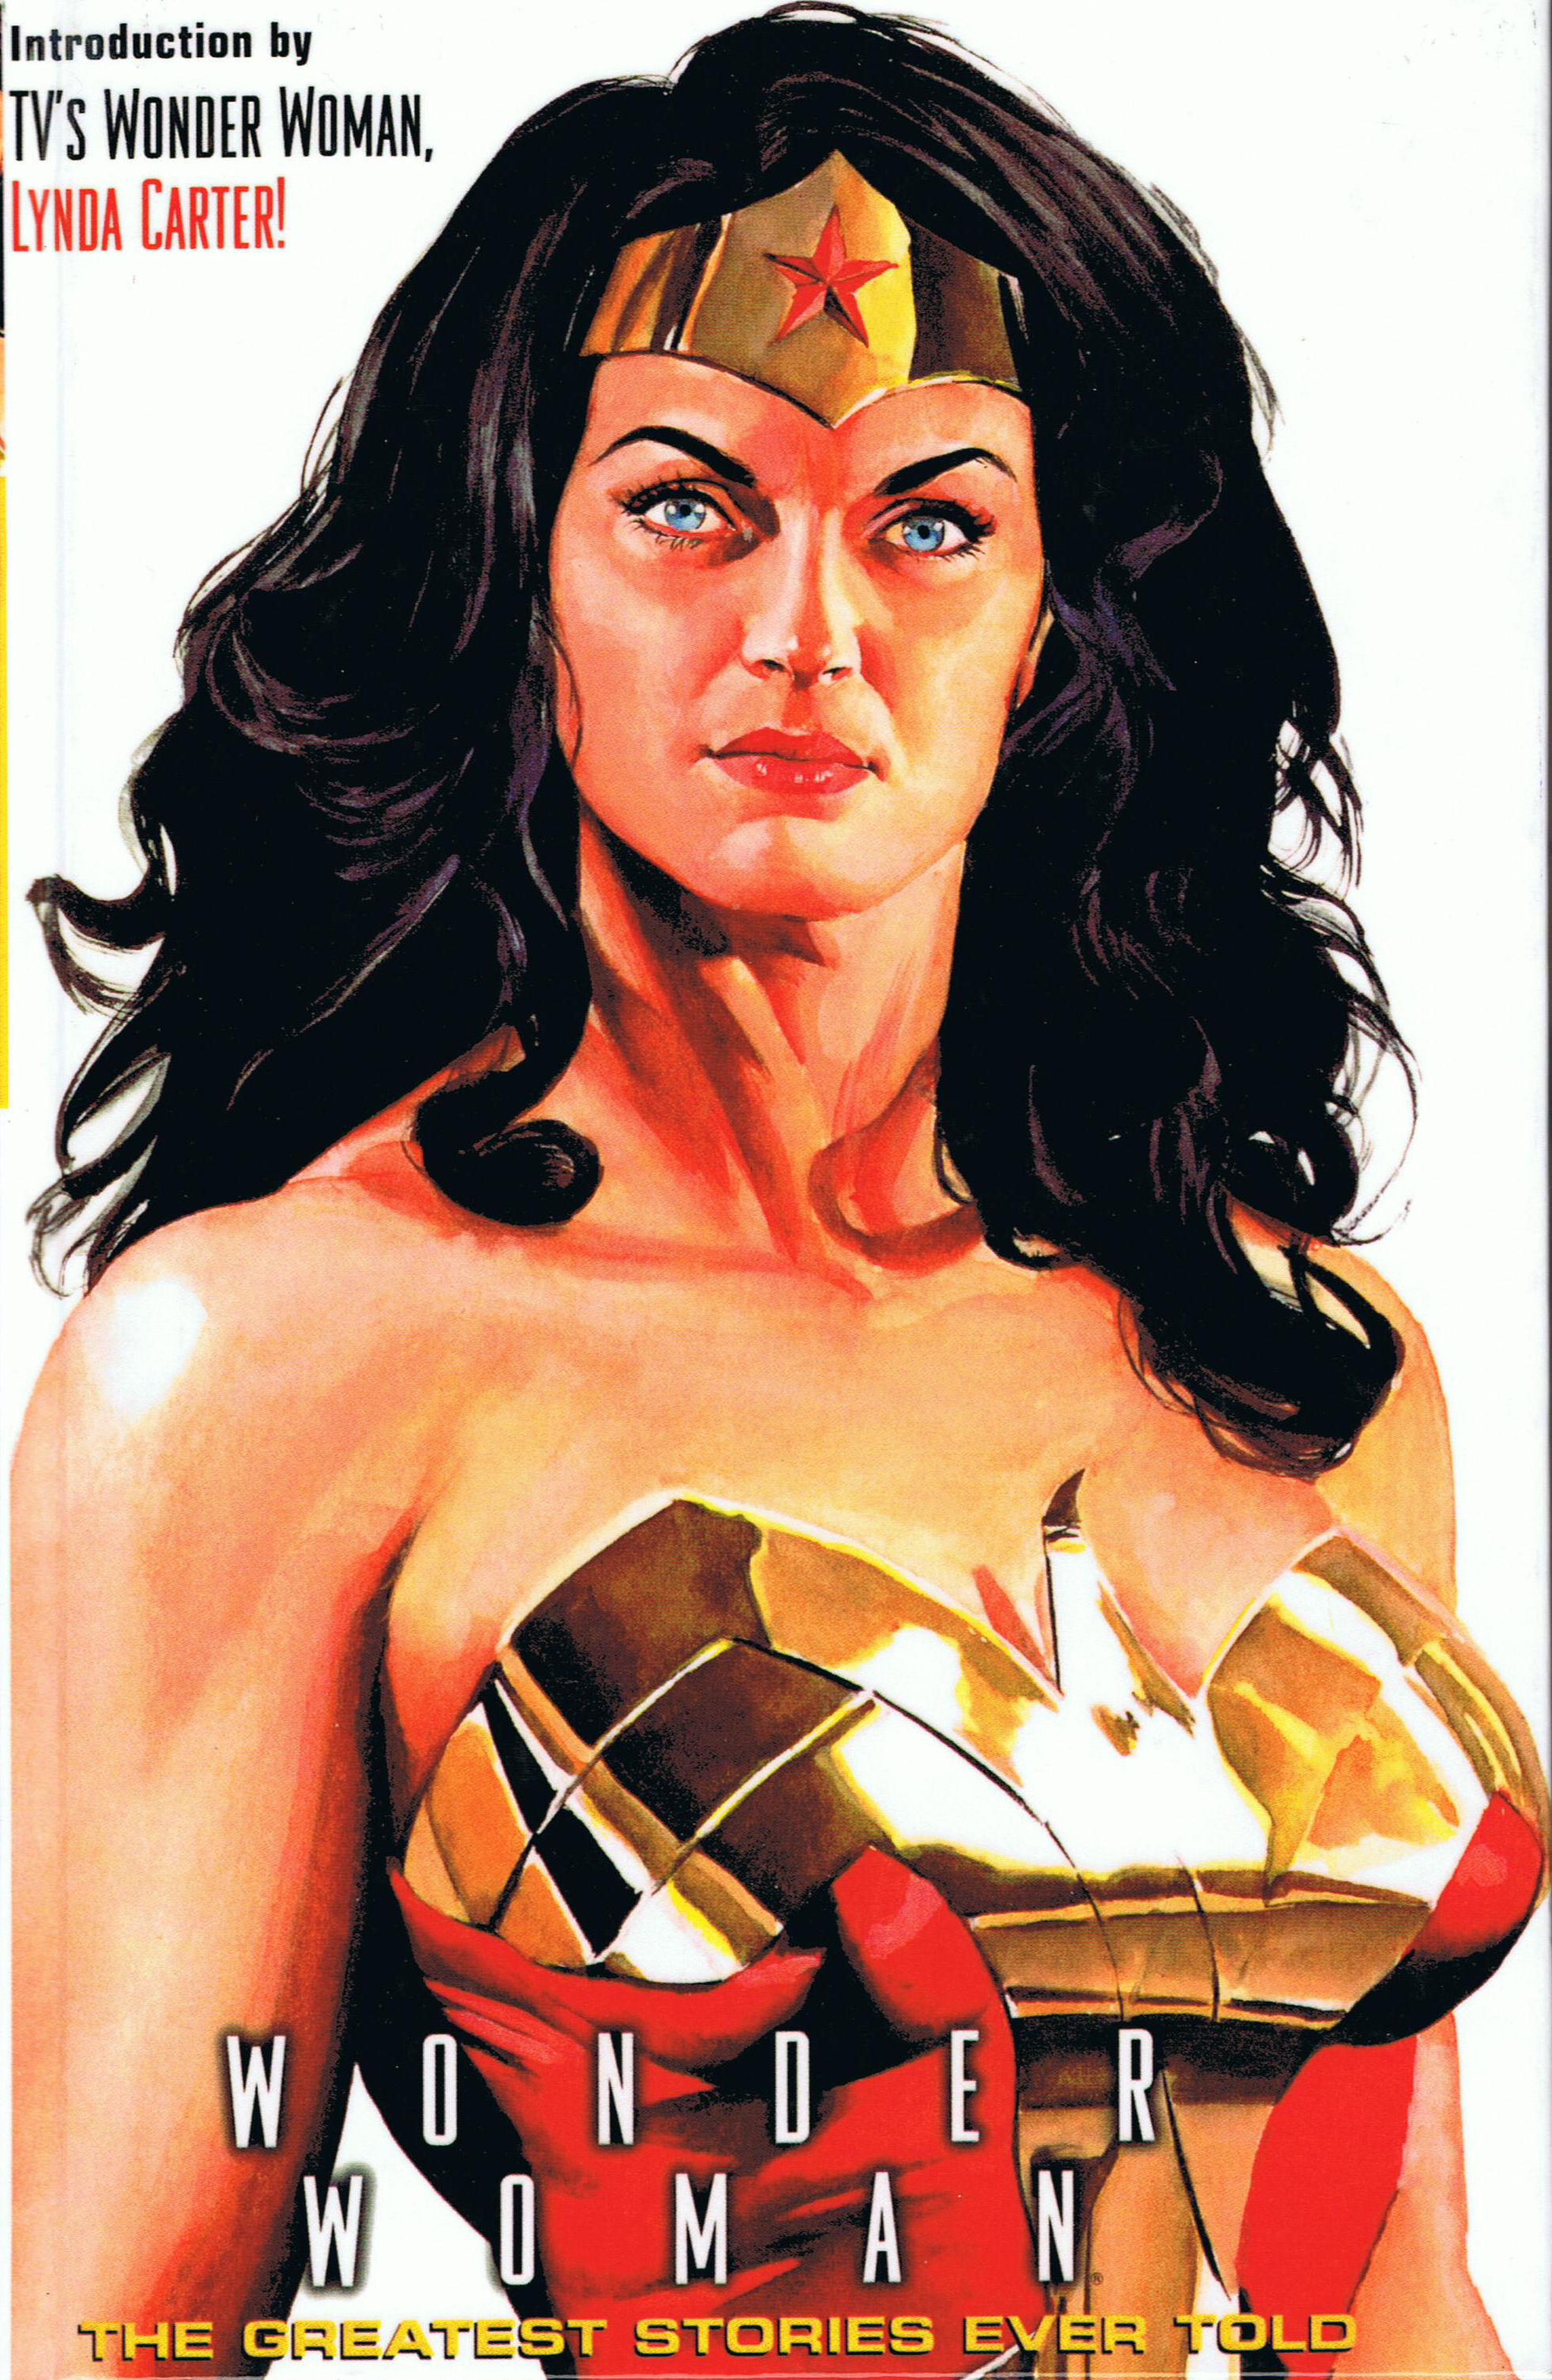 Wonder Woman - The Greatest Stories Ever Told 1 - Wonder Woman - The greatest stories ever told